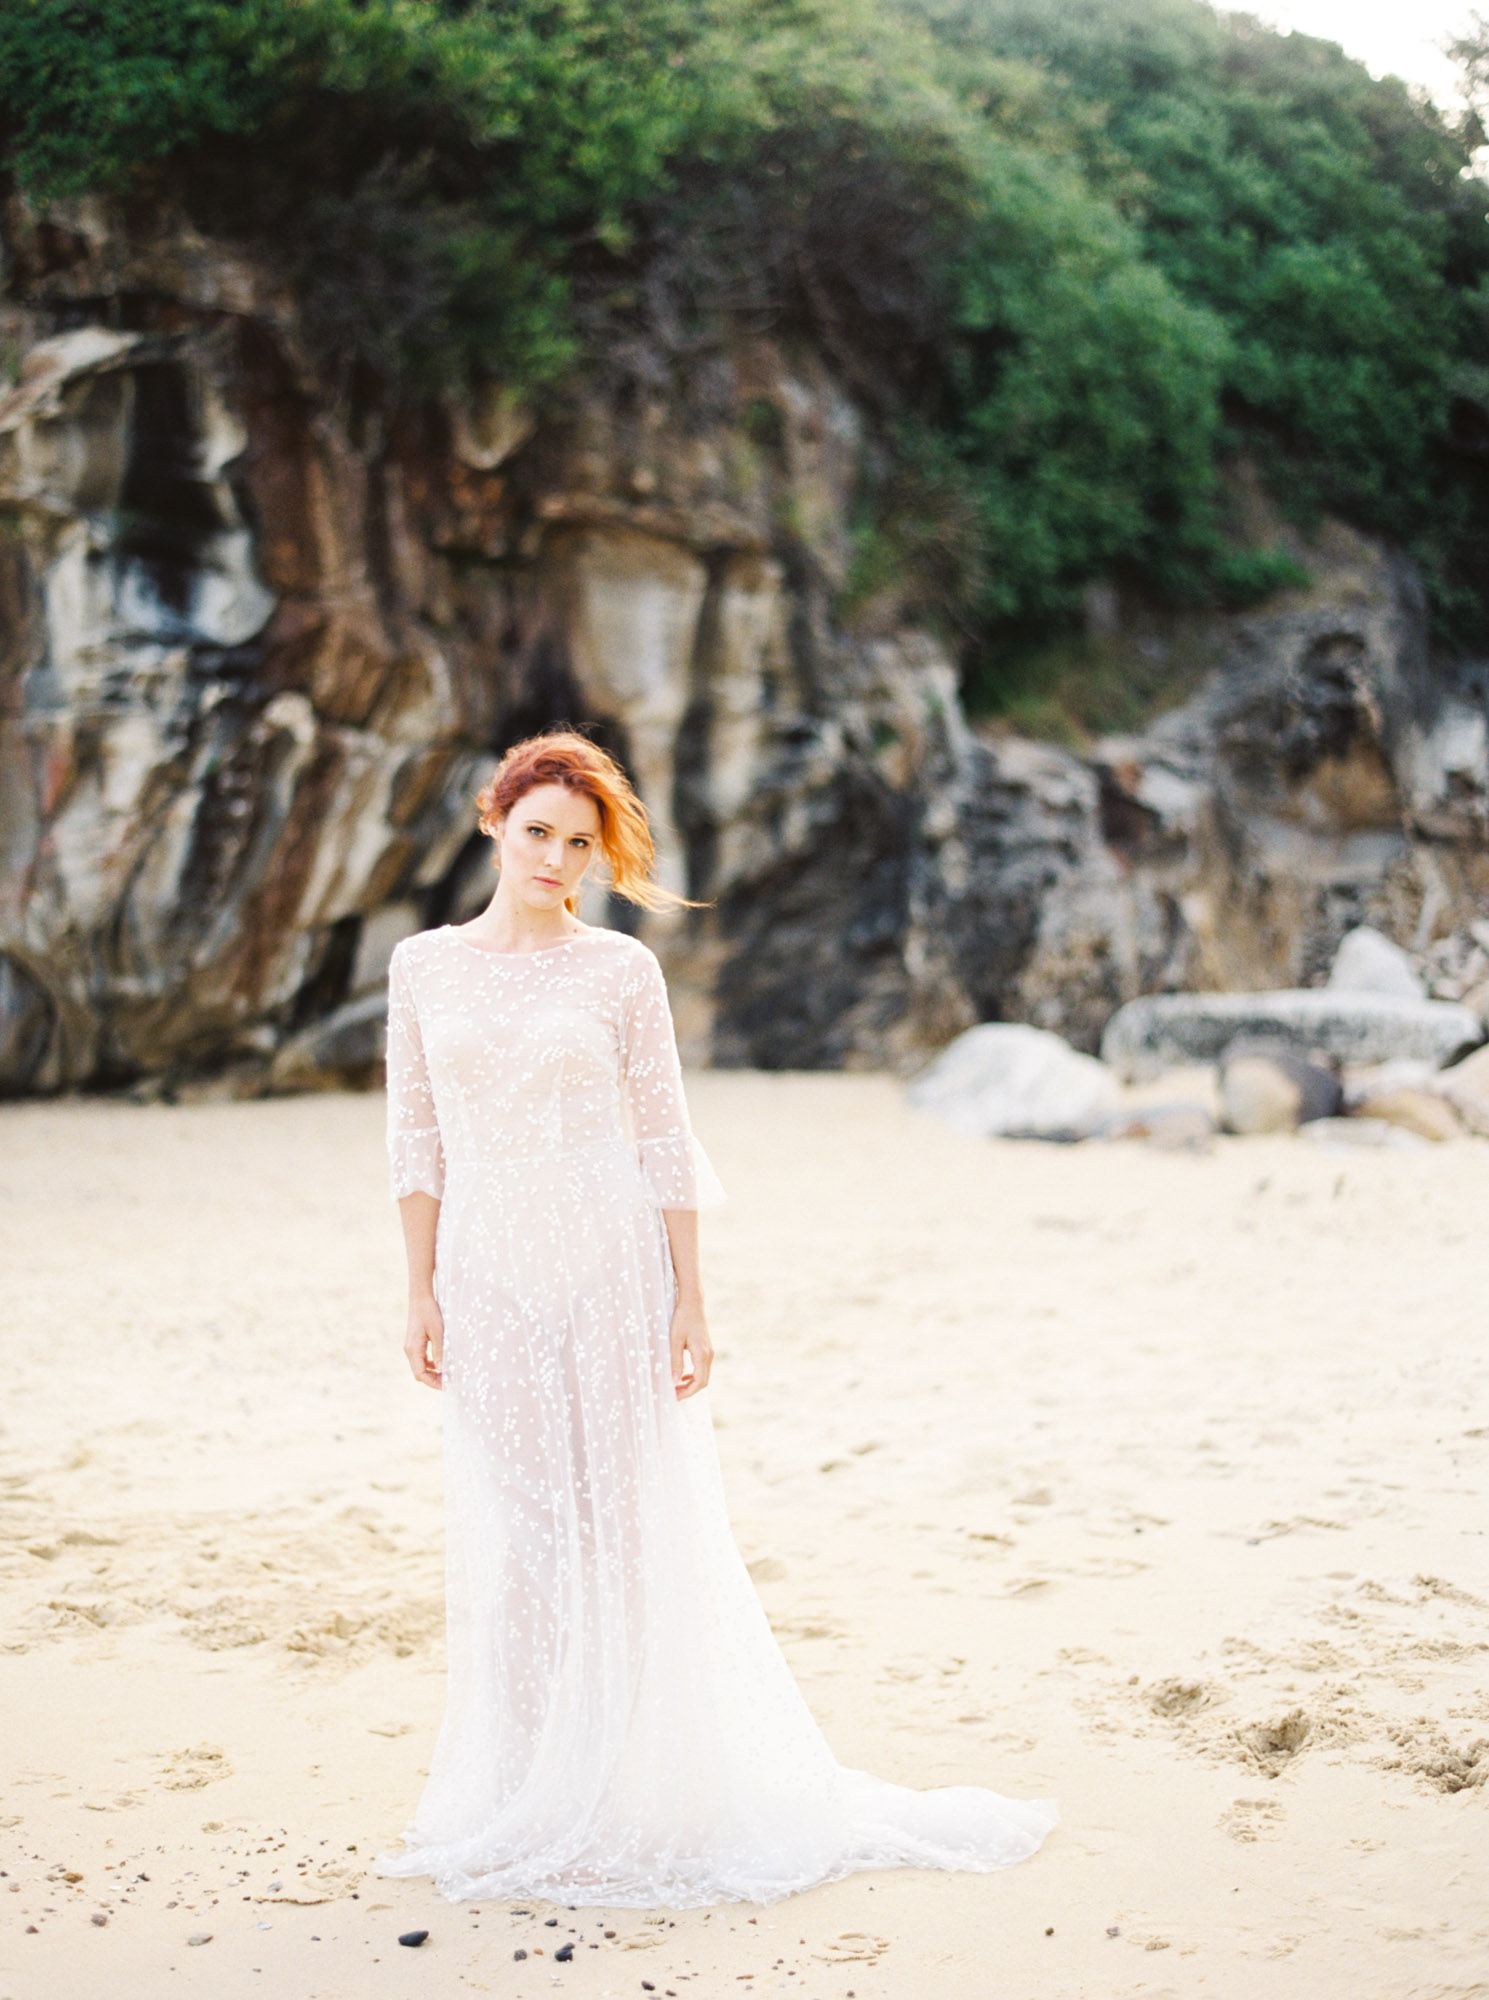 00028- Fine Art Film Newcastle NSW Wedding Photographer Sheri McMahon.jpg